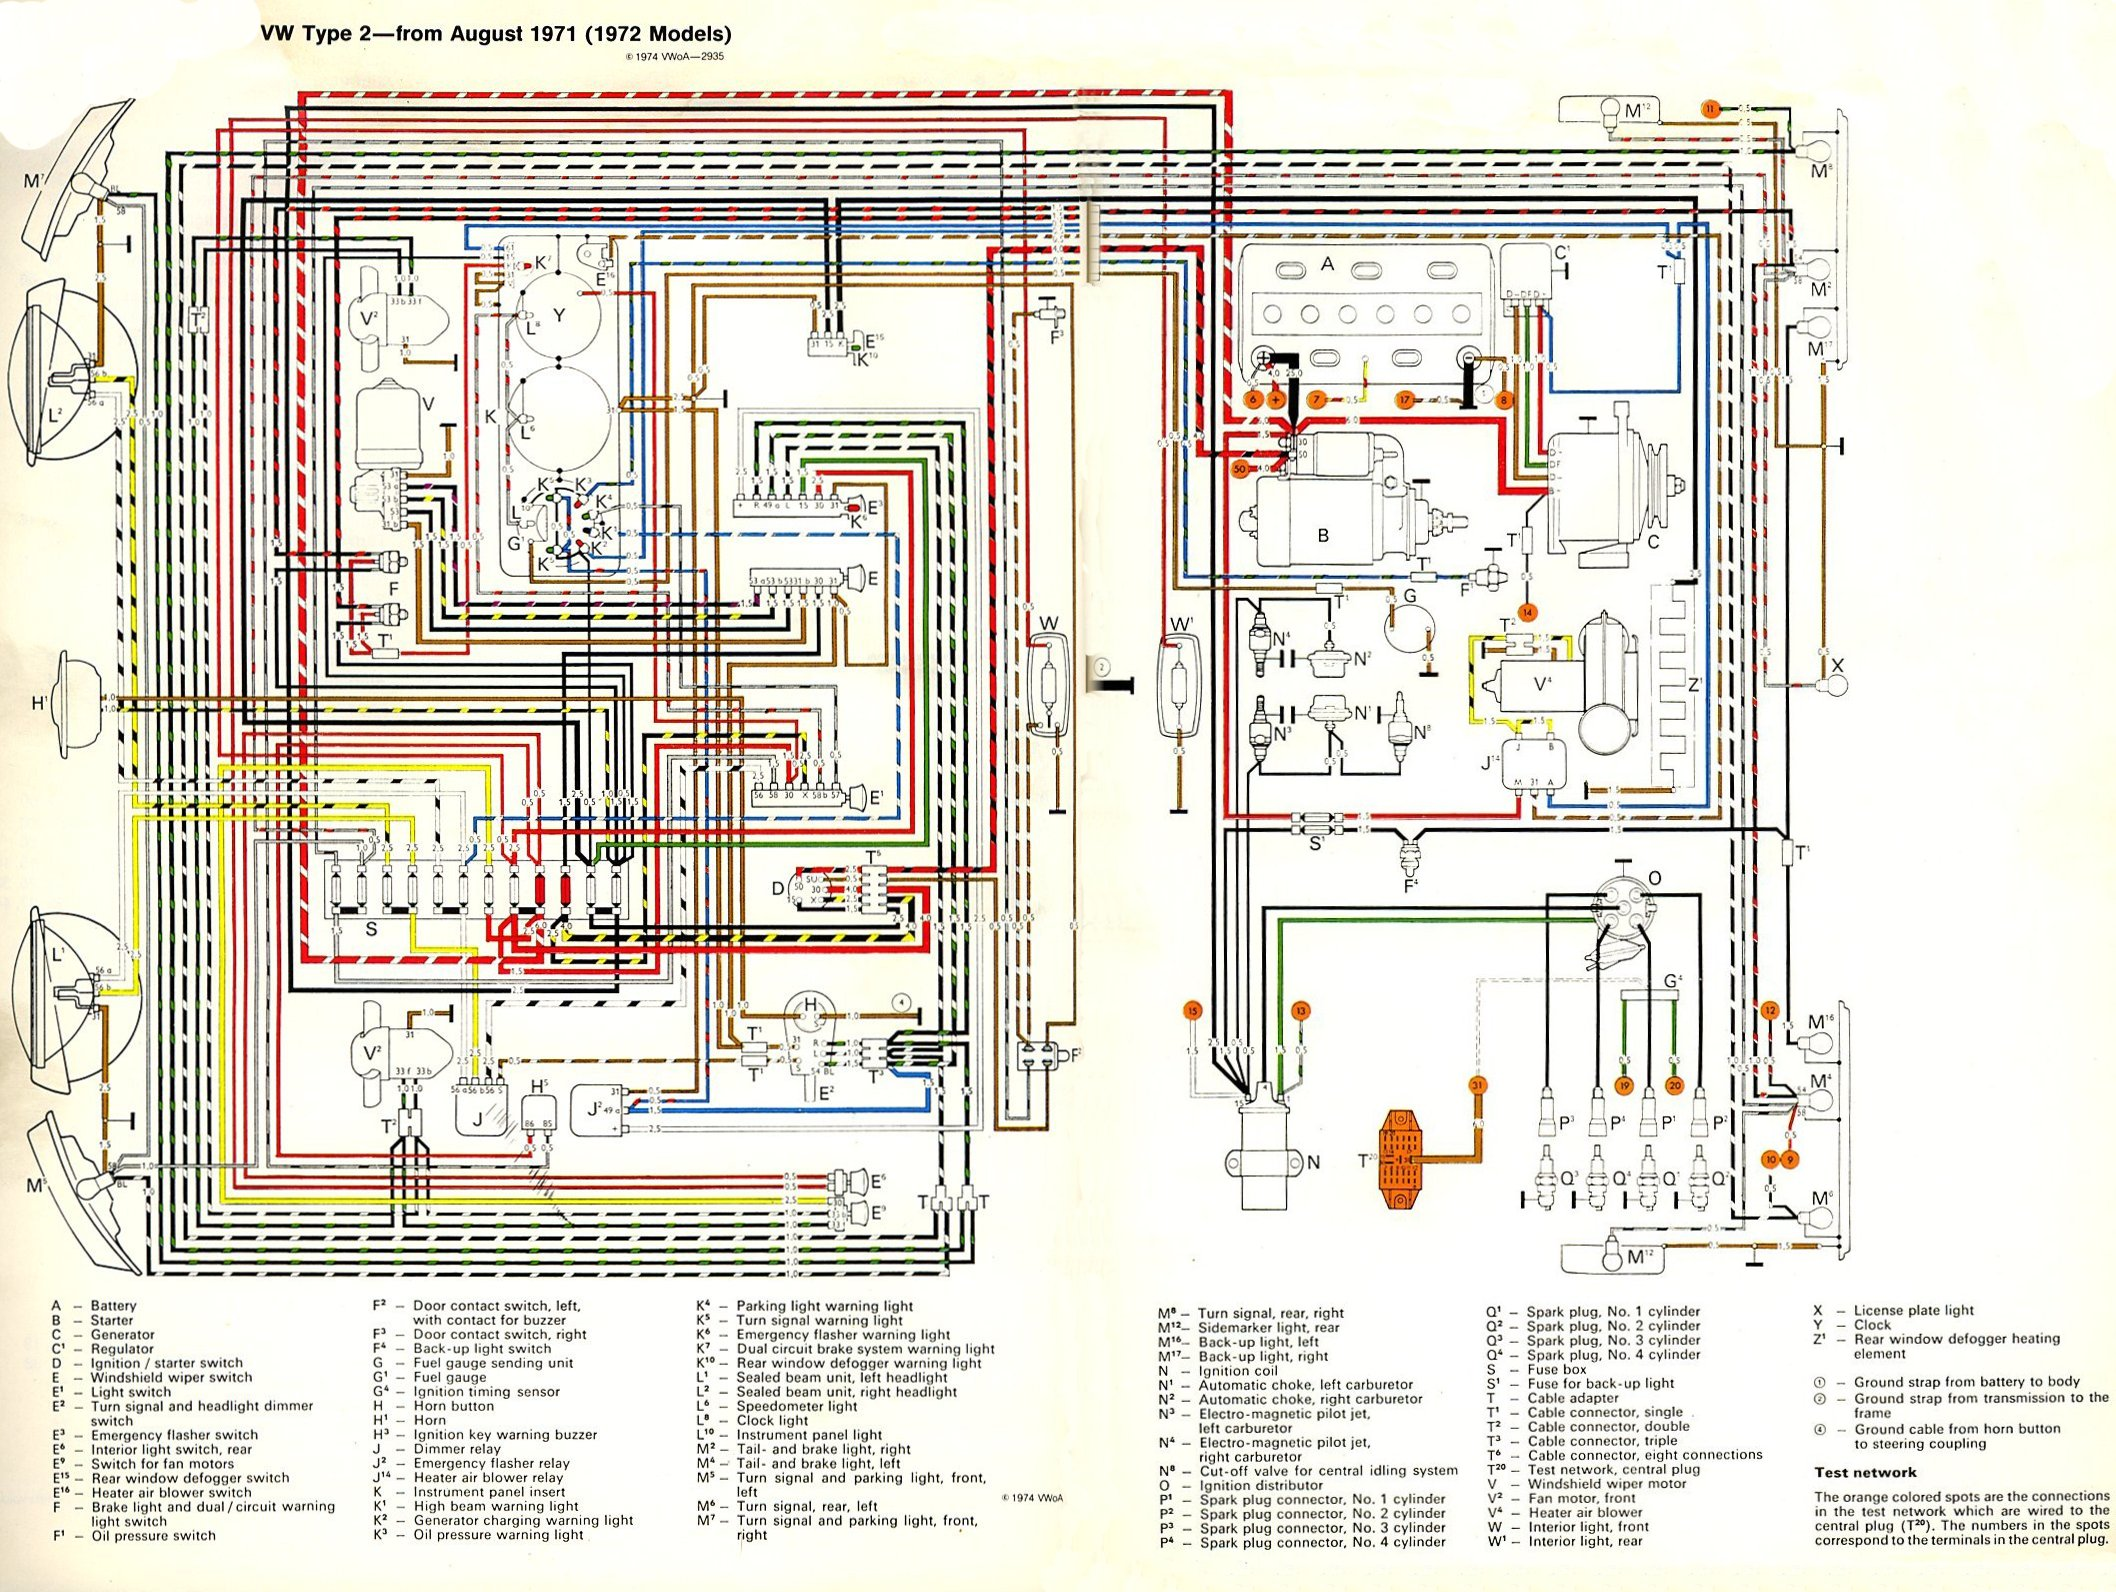 bus_1972_wiring wiring diagram for 1971 vw beetle the wiring diagram  at bayanpartner.co